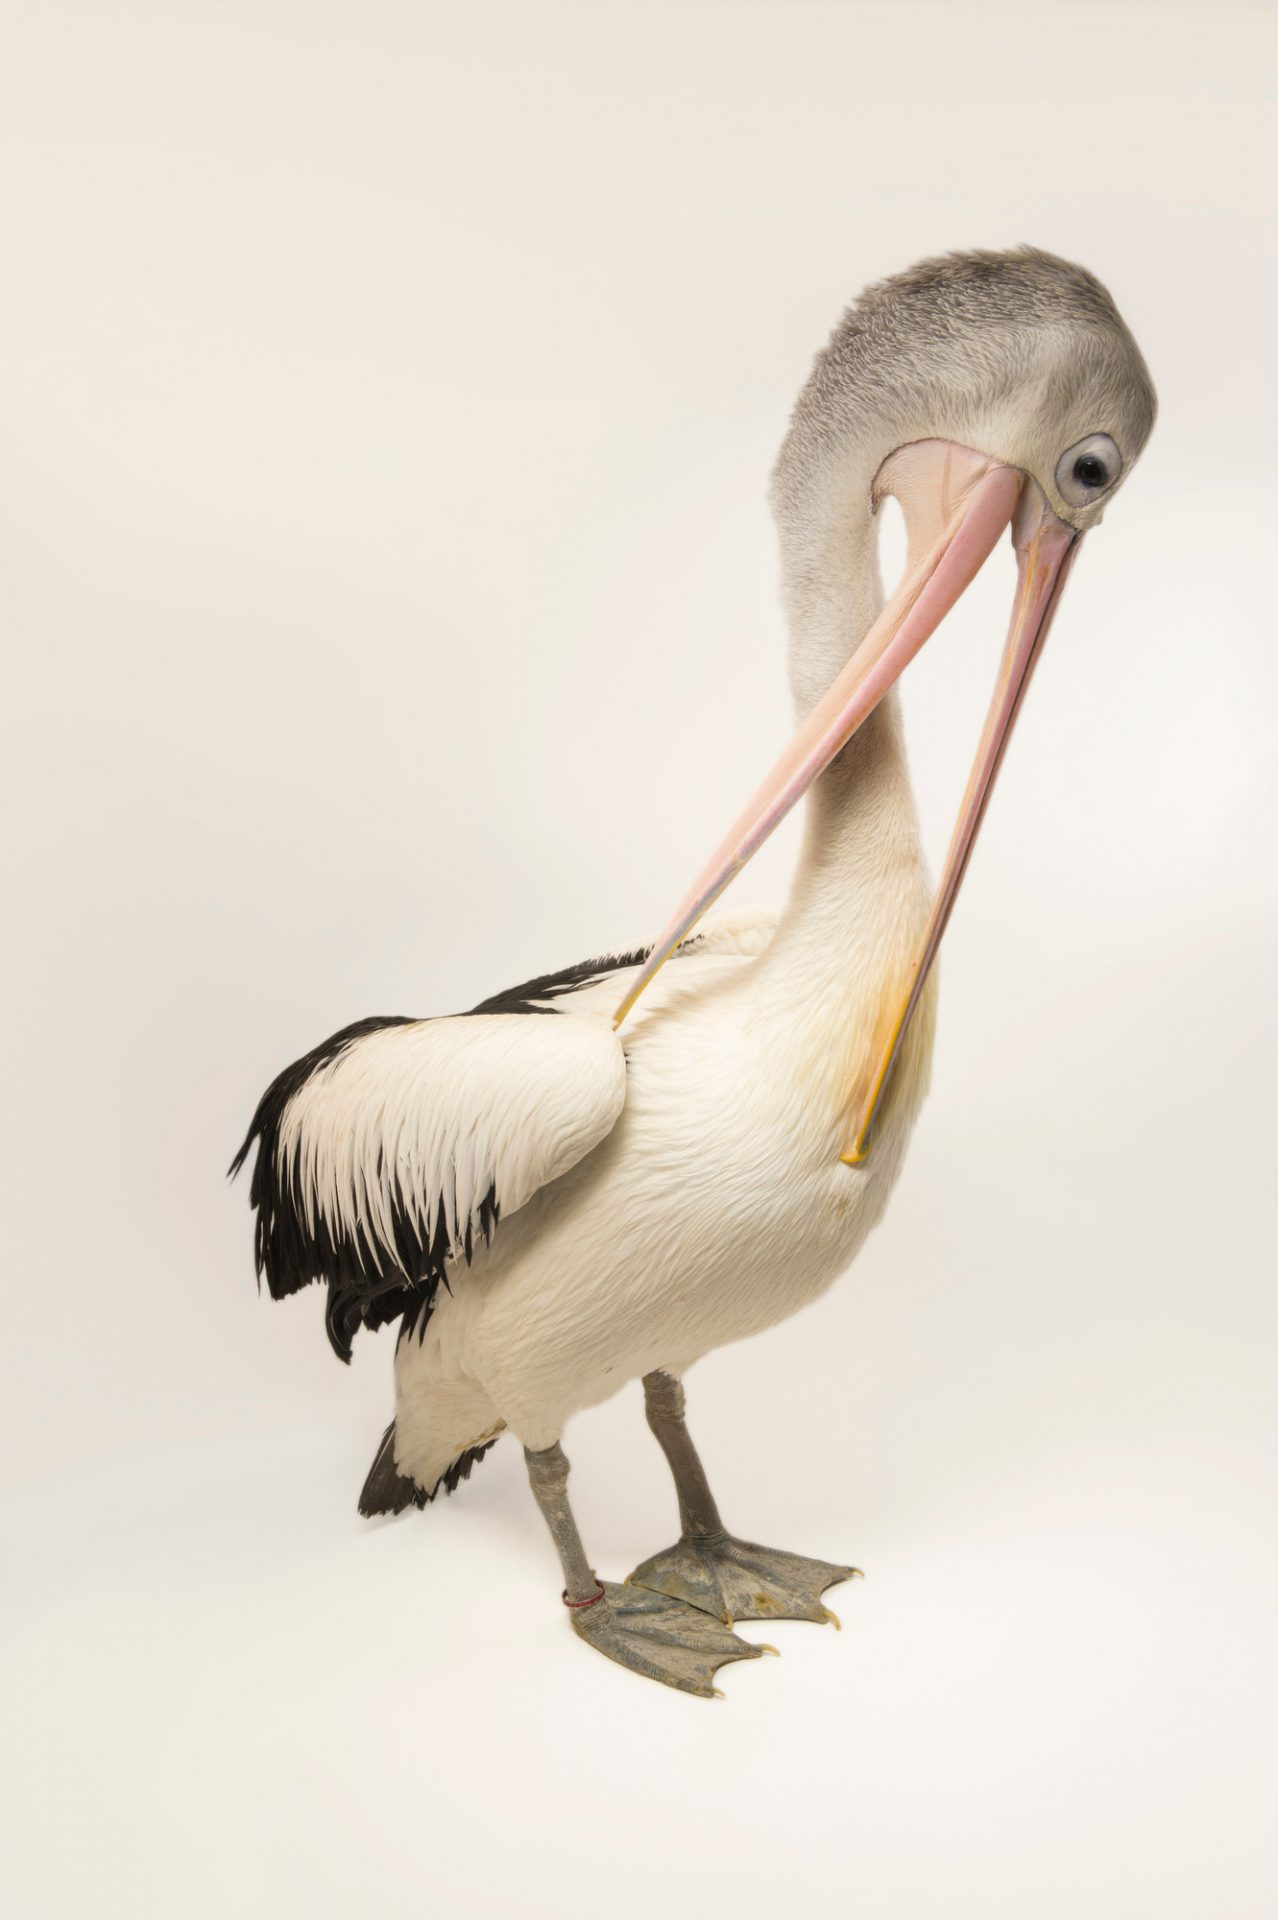 Photo: An Australian pelican (Pelecanus conspicillatus) at the Plzen Zoo in the Czech Republic.